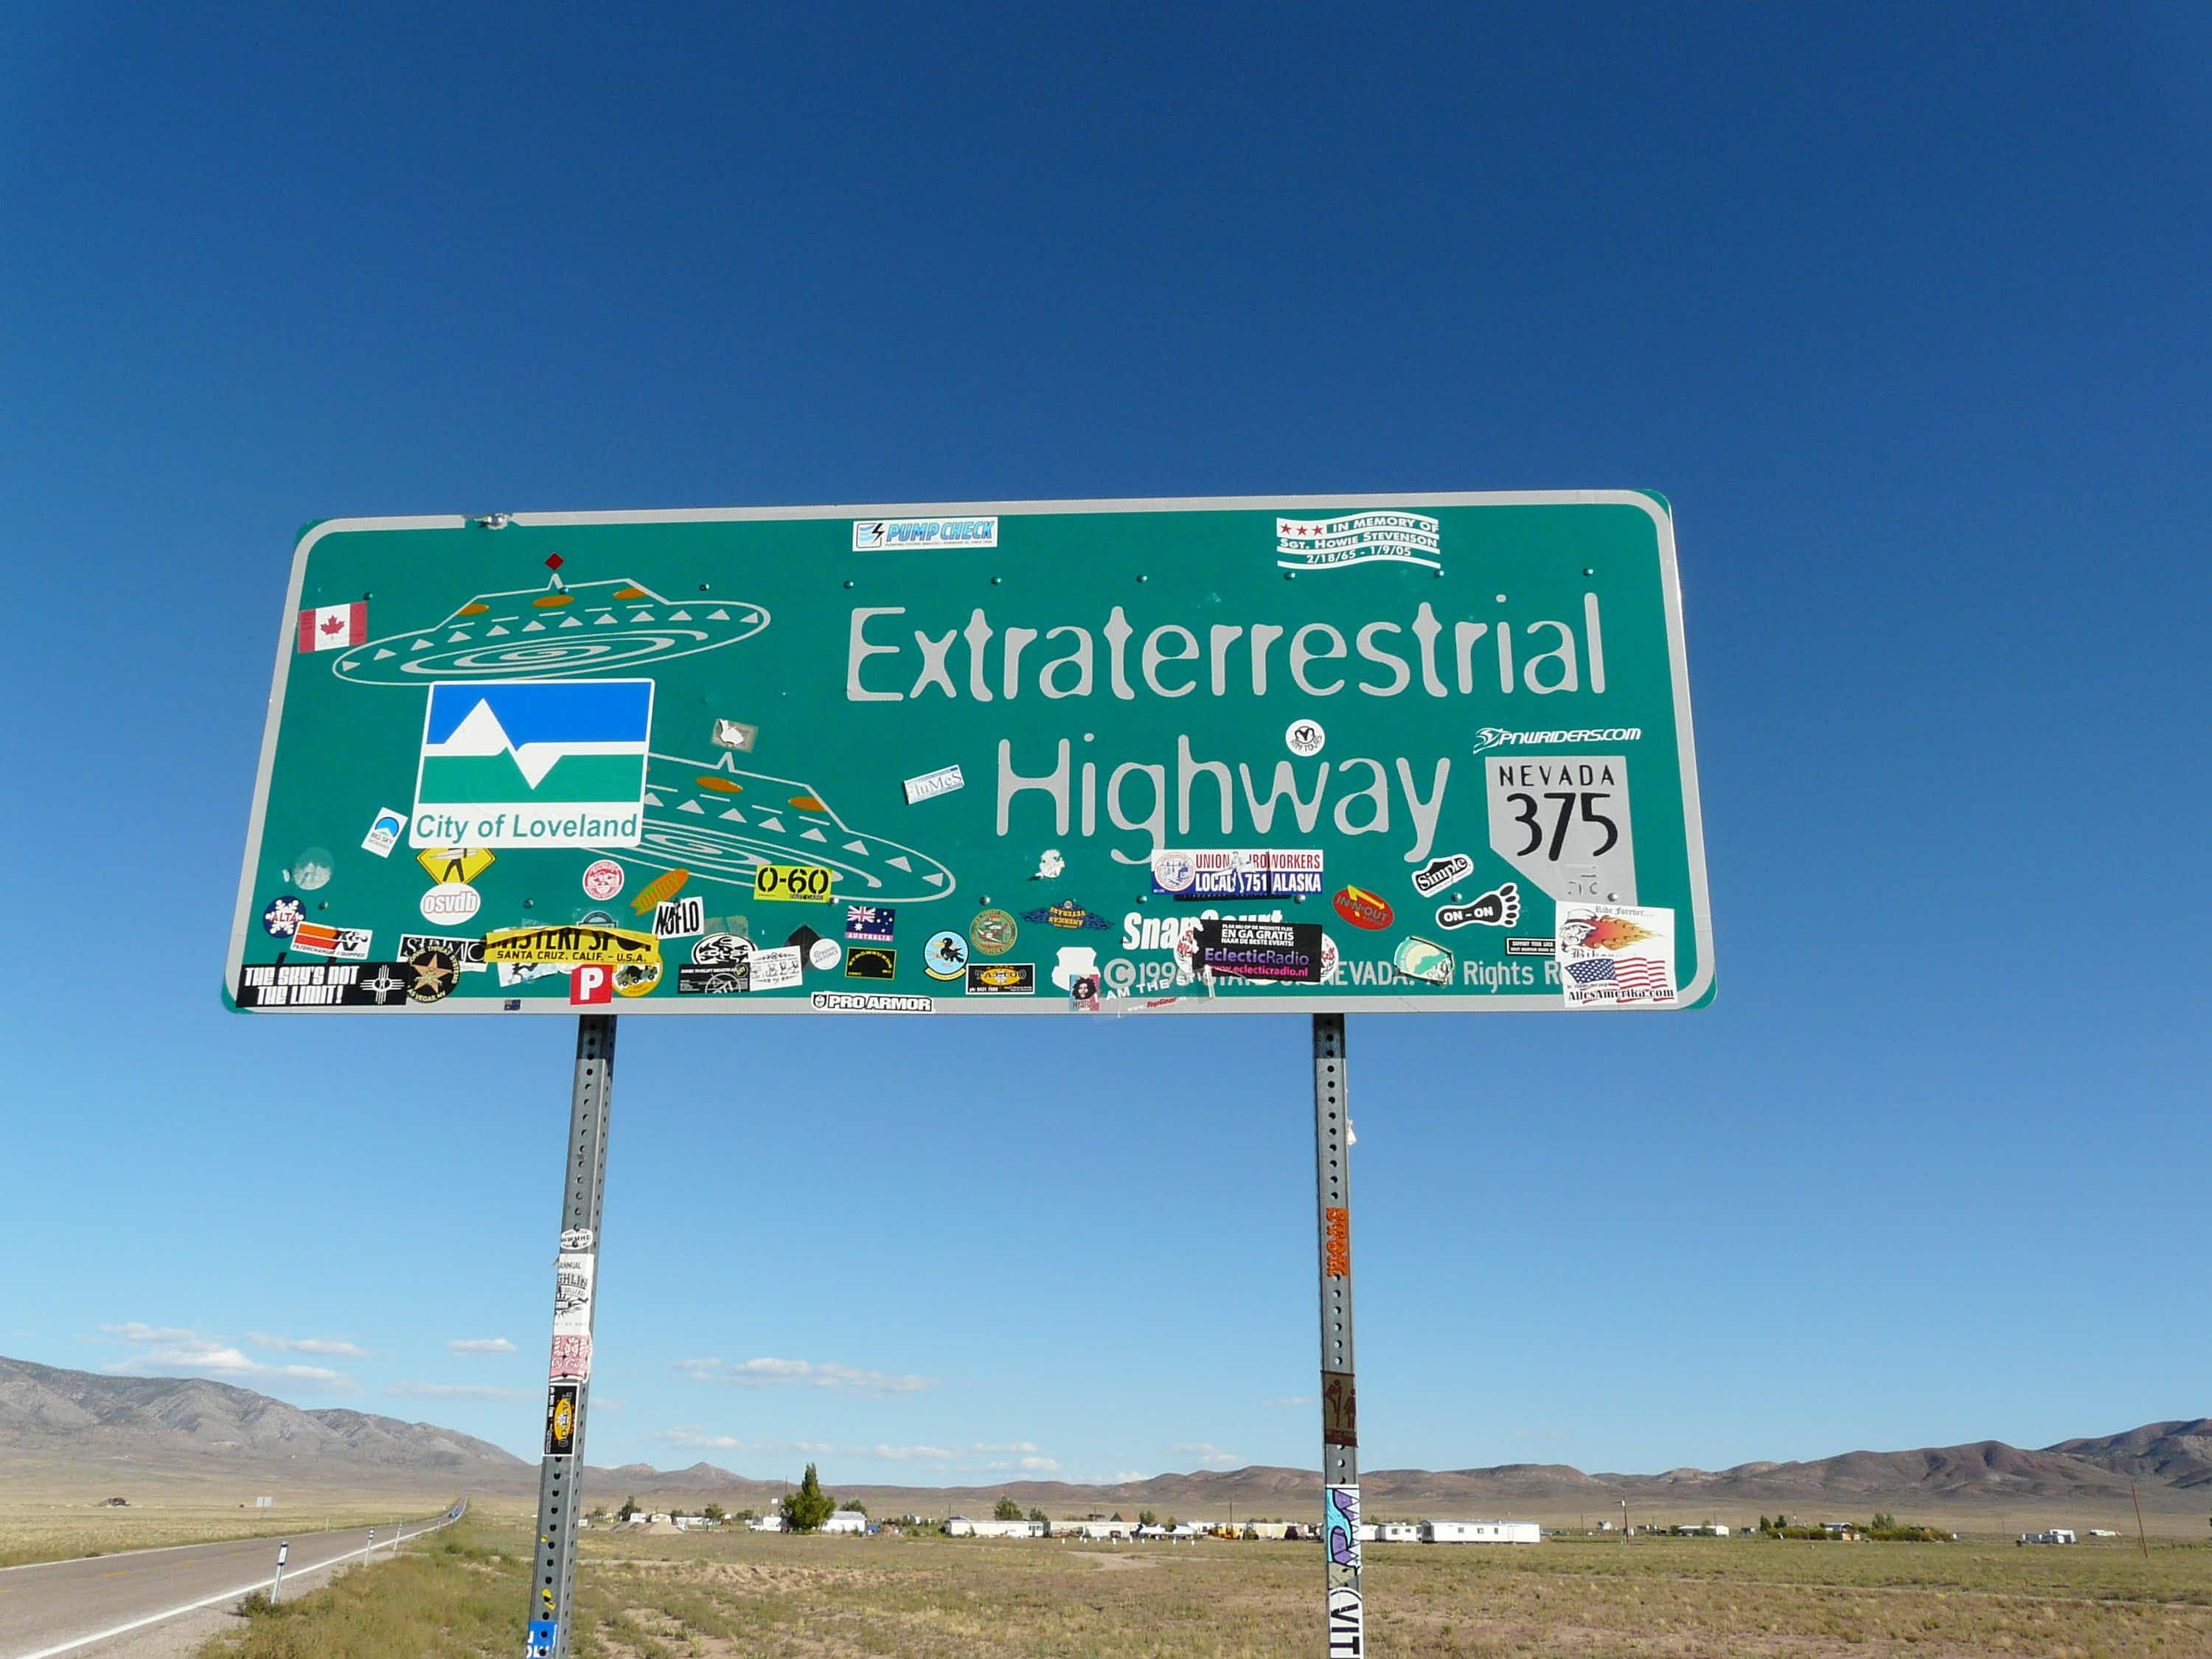 Search for UFOs and aliens on a three-day road trip around Area 51 in Nevada